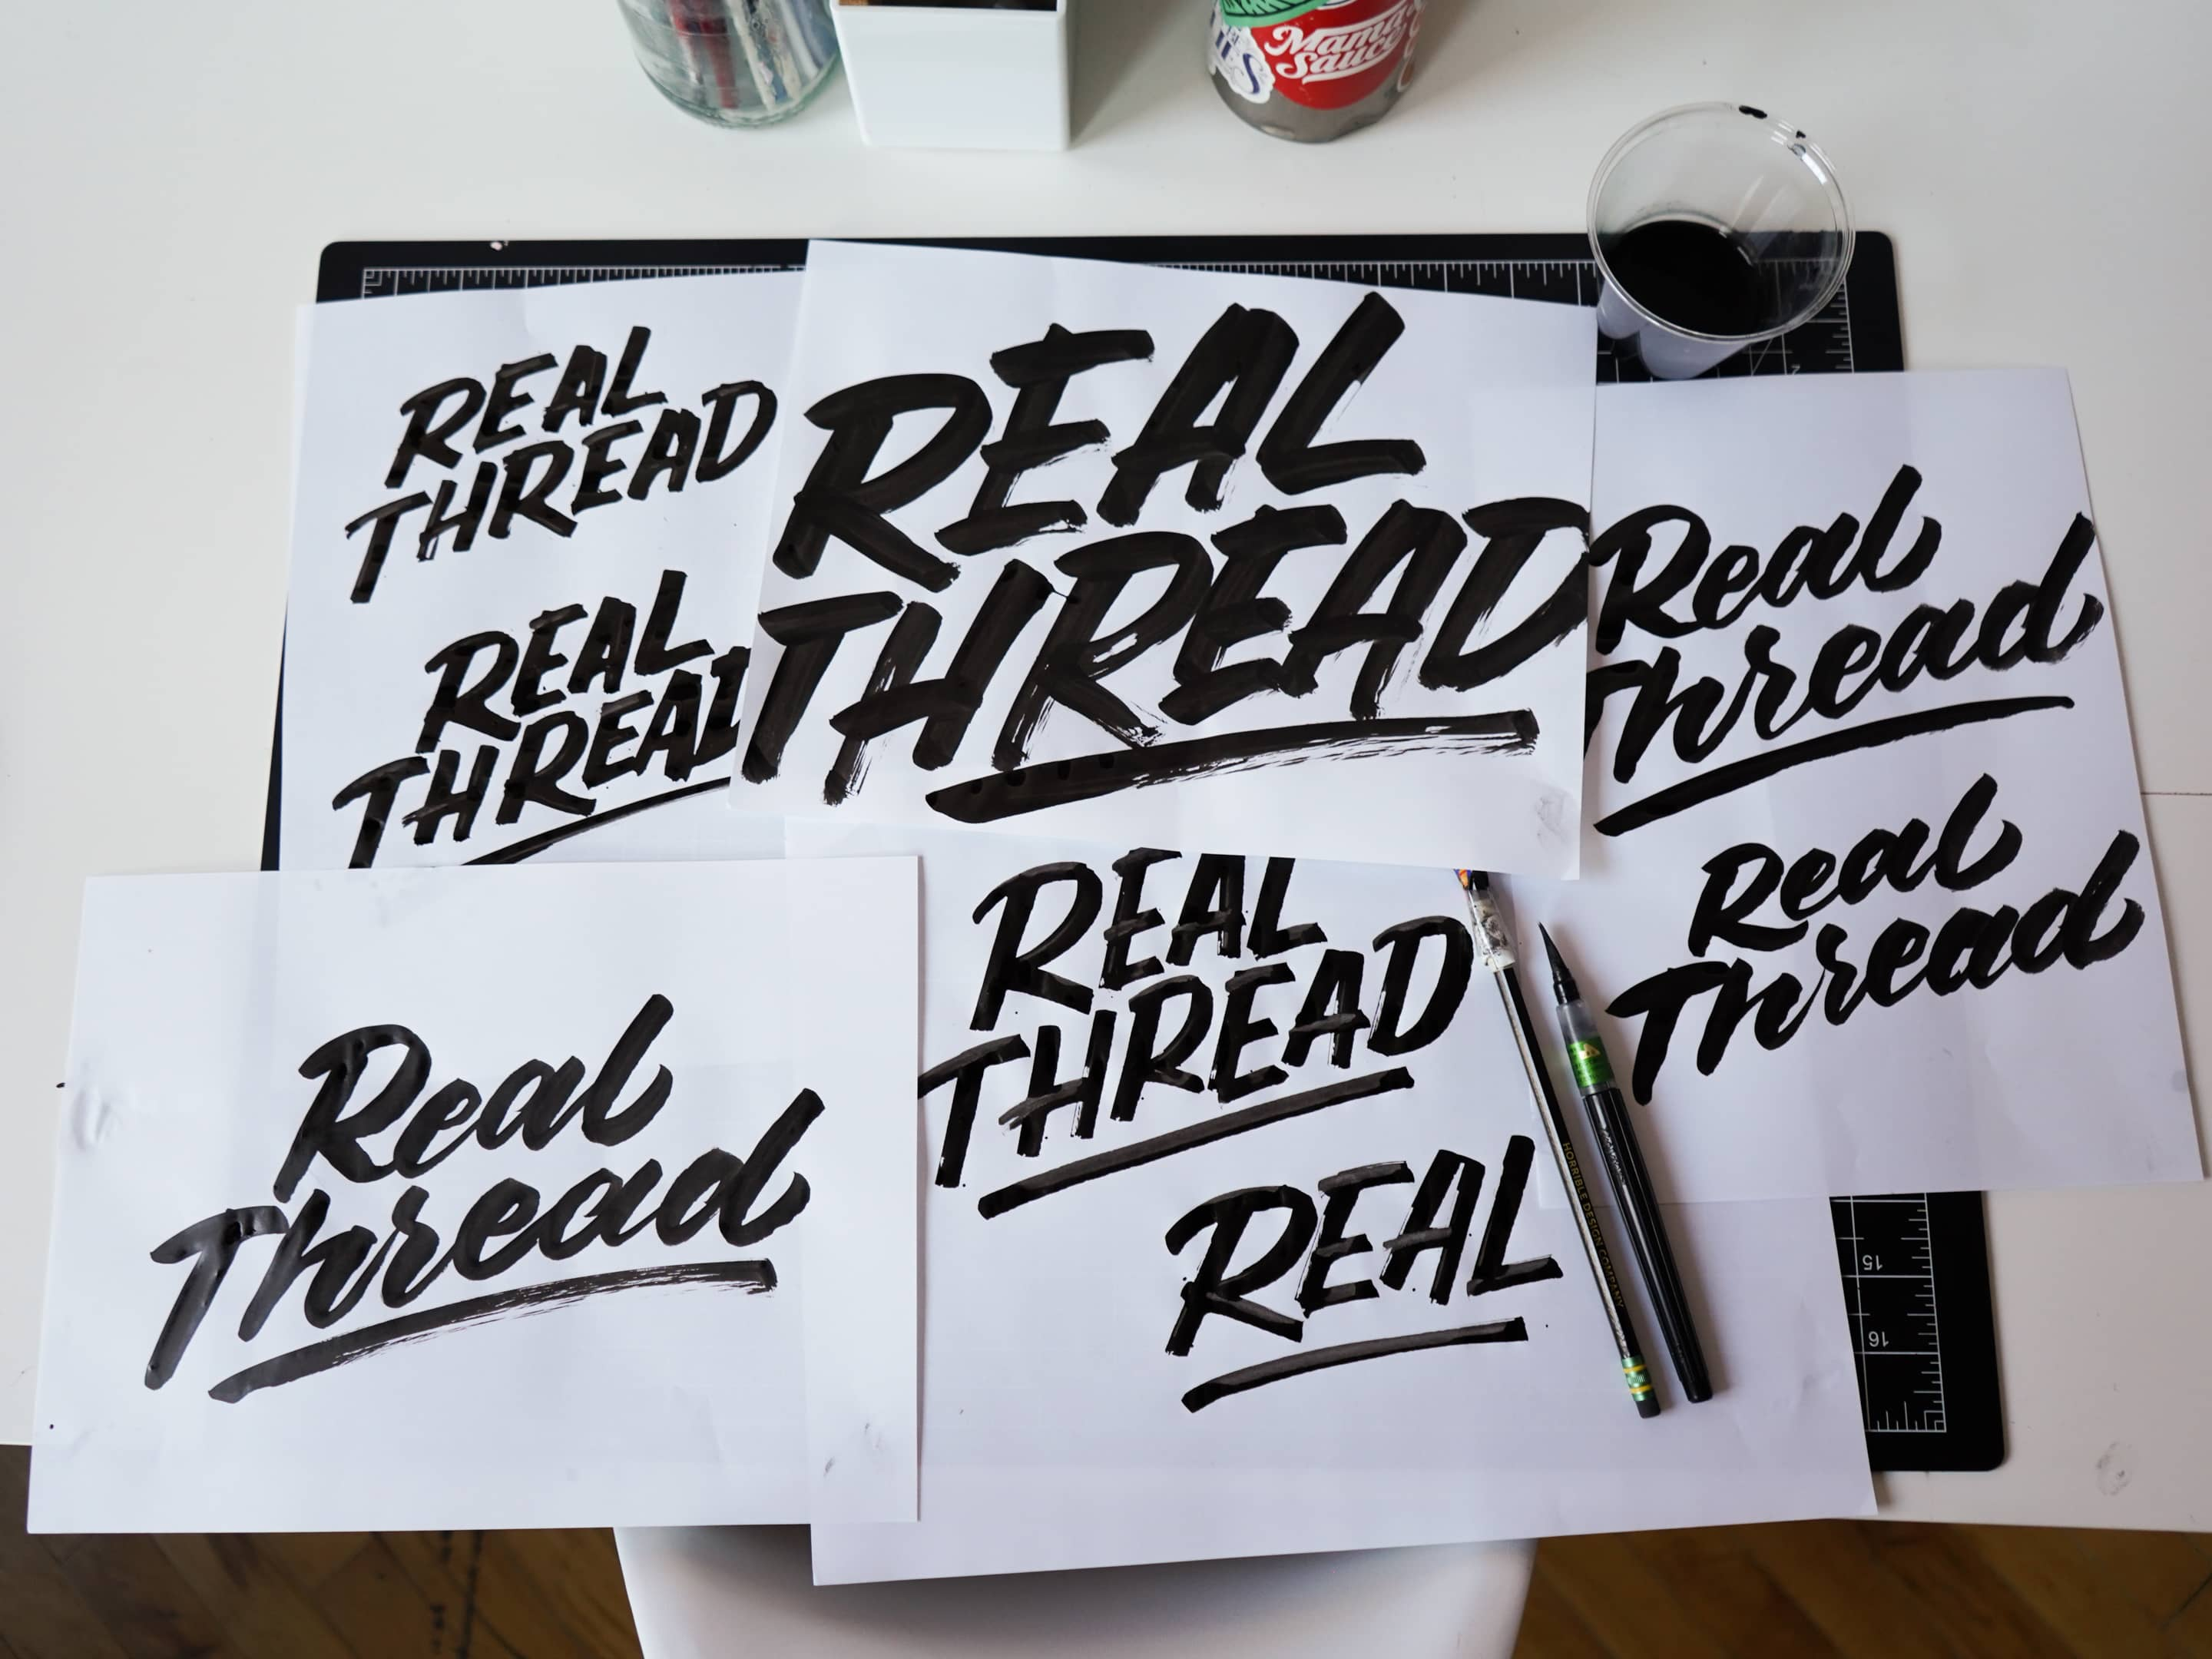 Real Thread lettering sketch